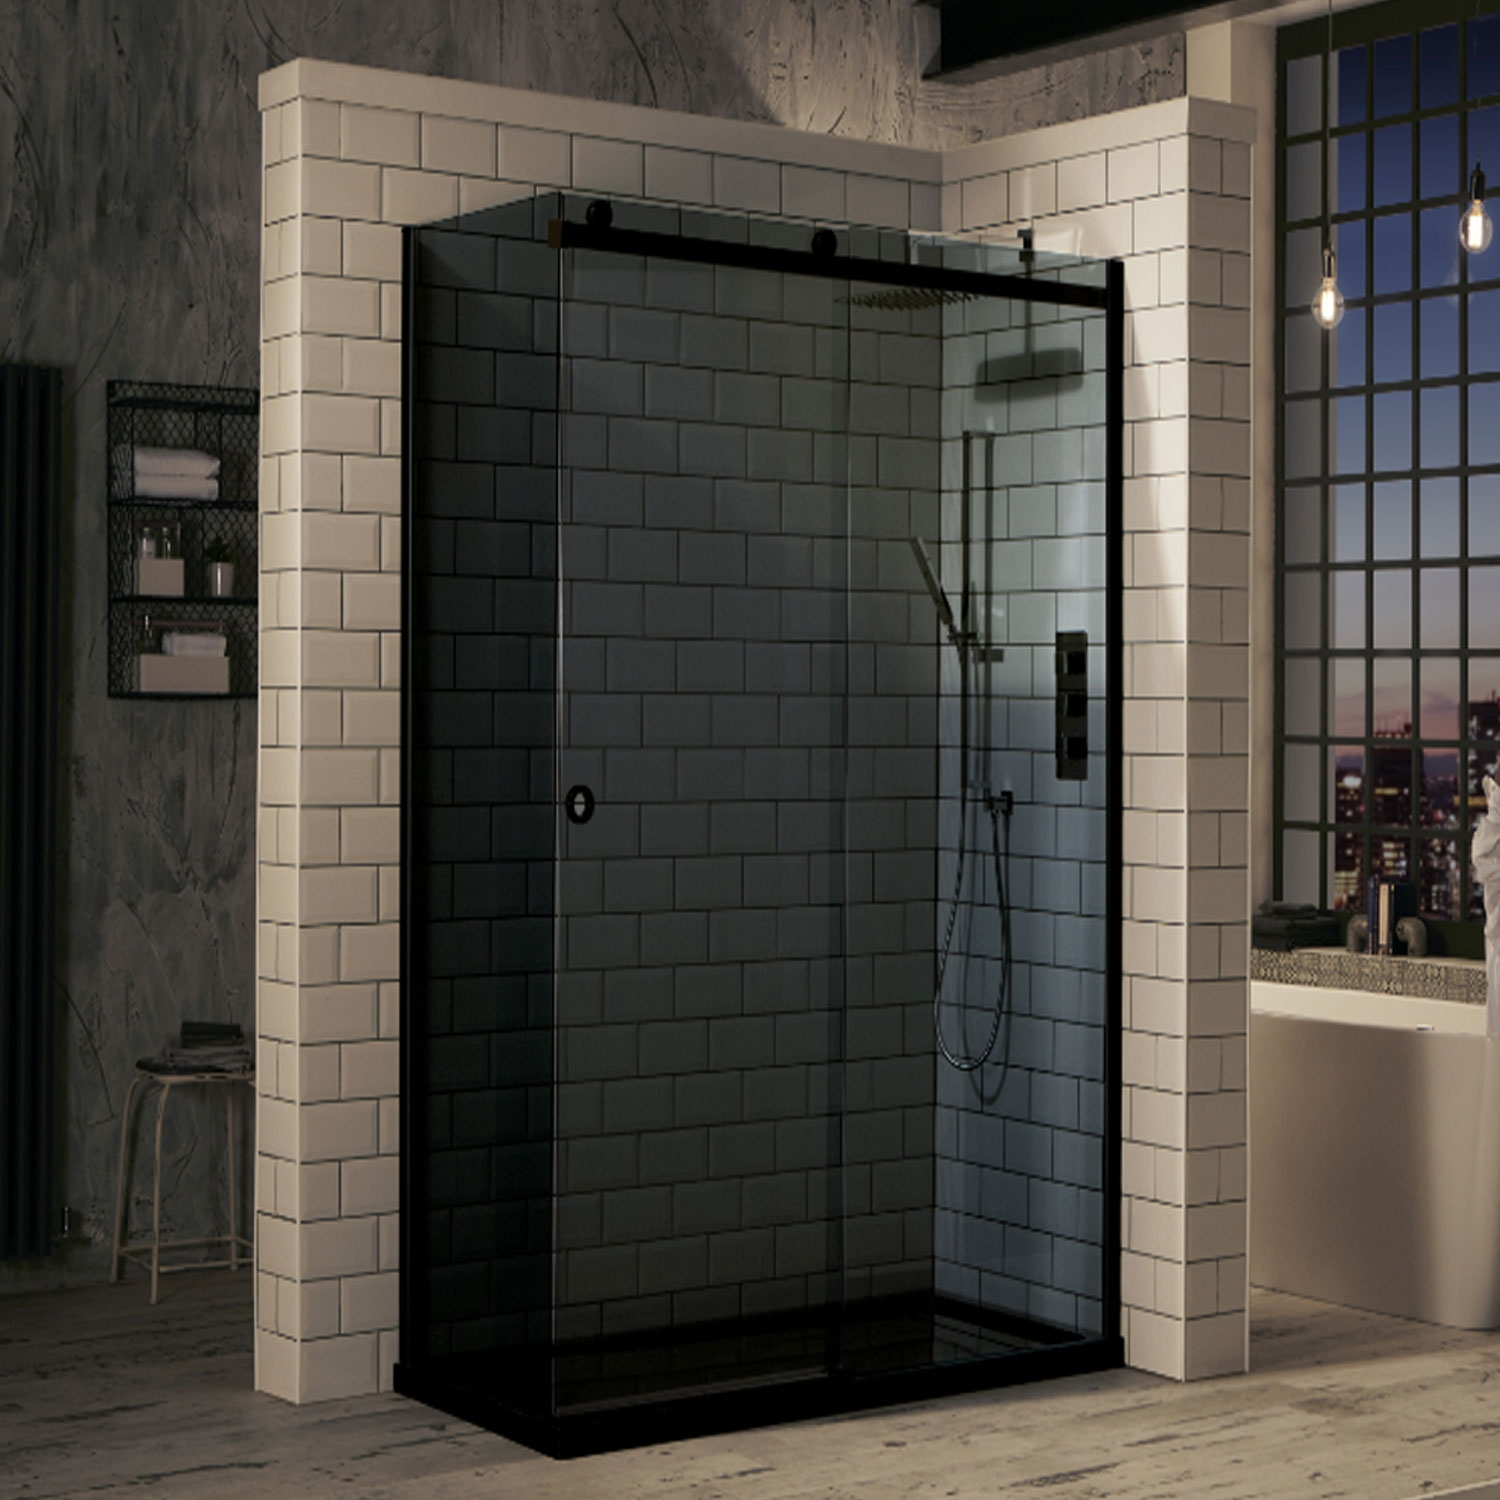 Verona Aquaglass+ Sphere Tinted Sliding Shower Door 1600mm Wide - 8mm Glass